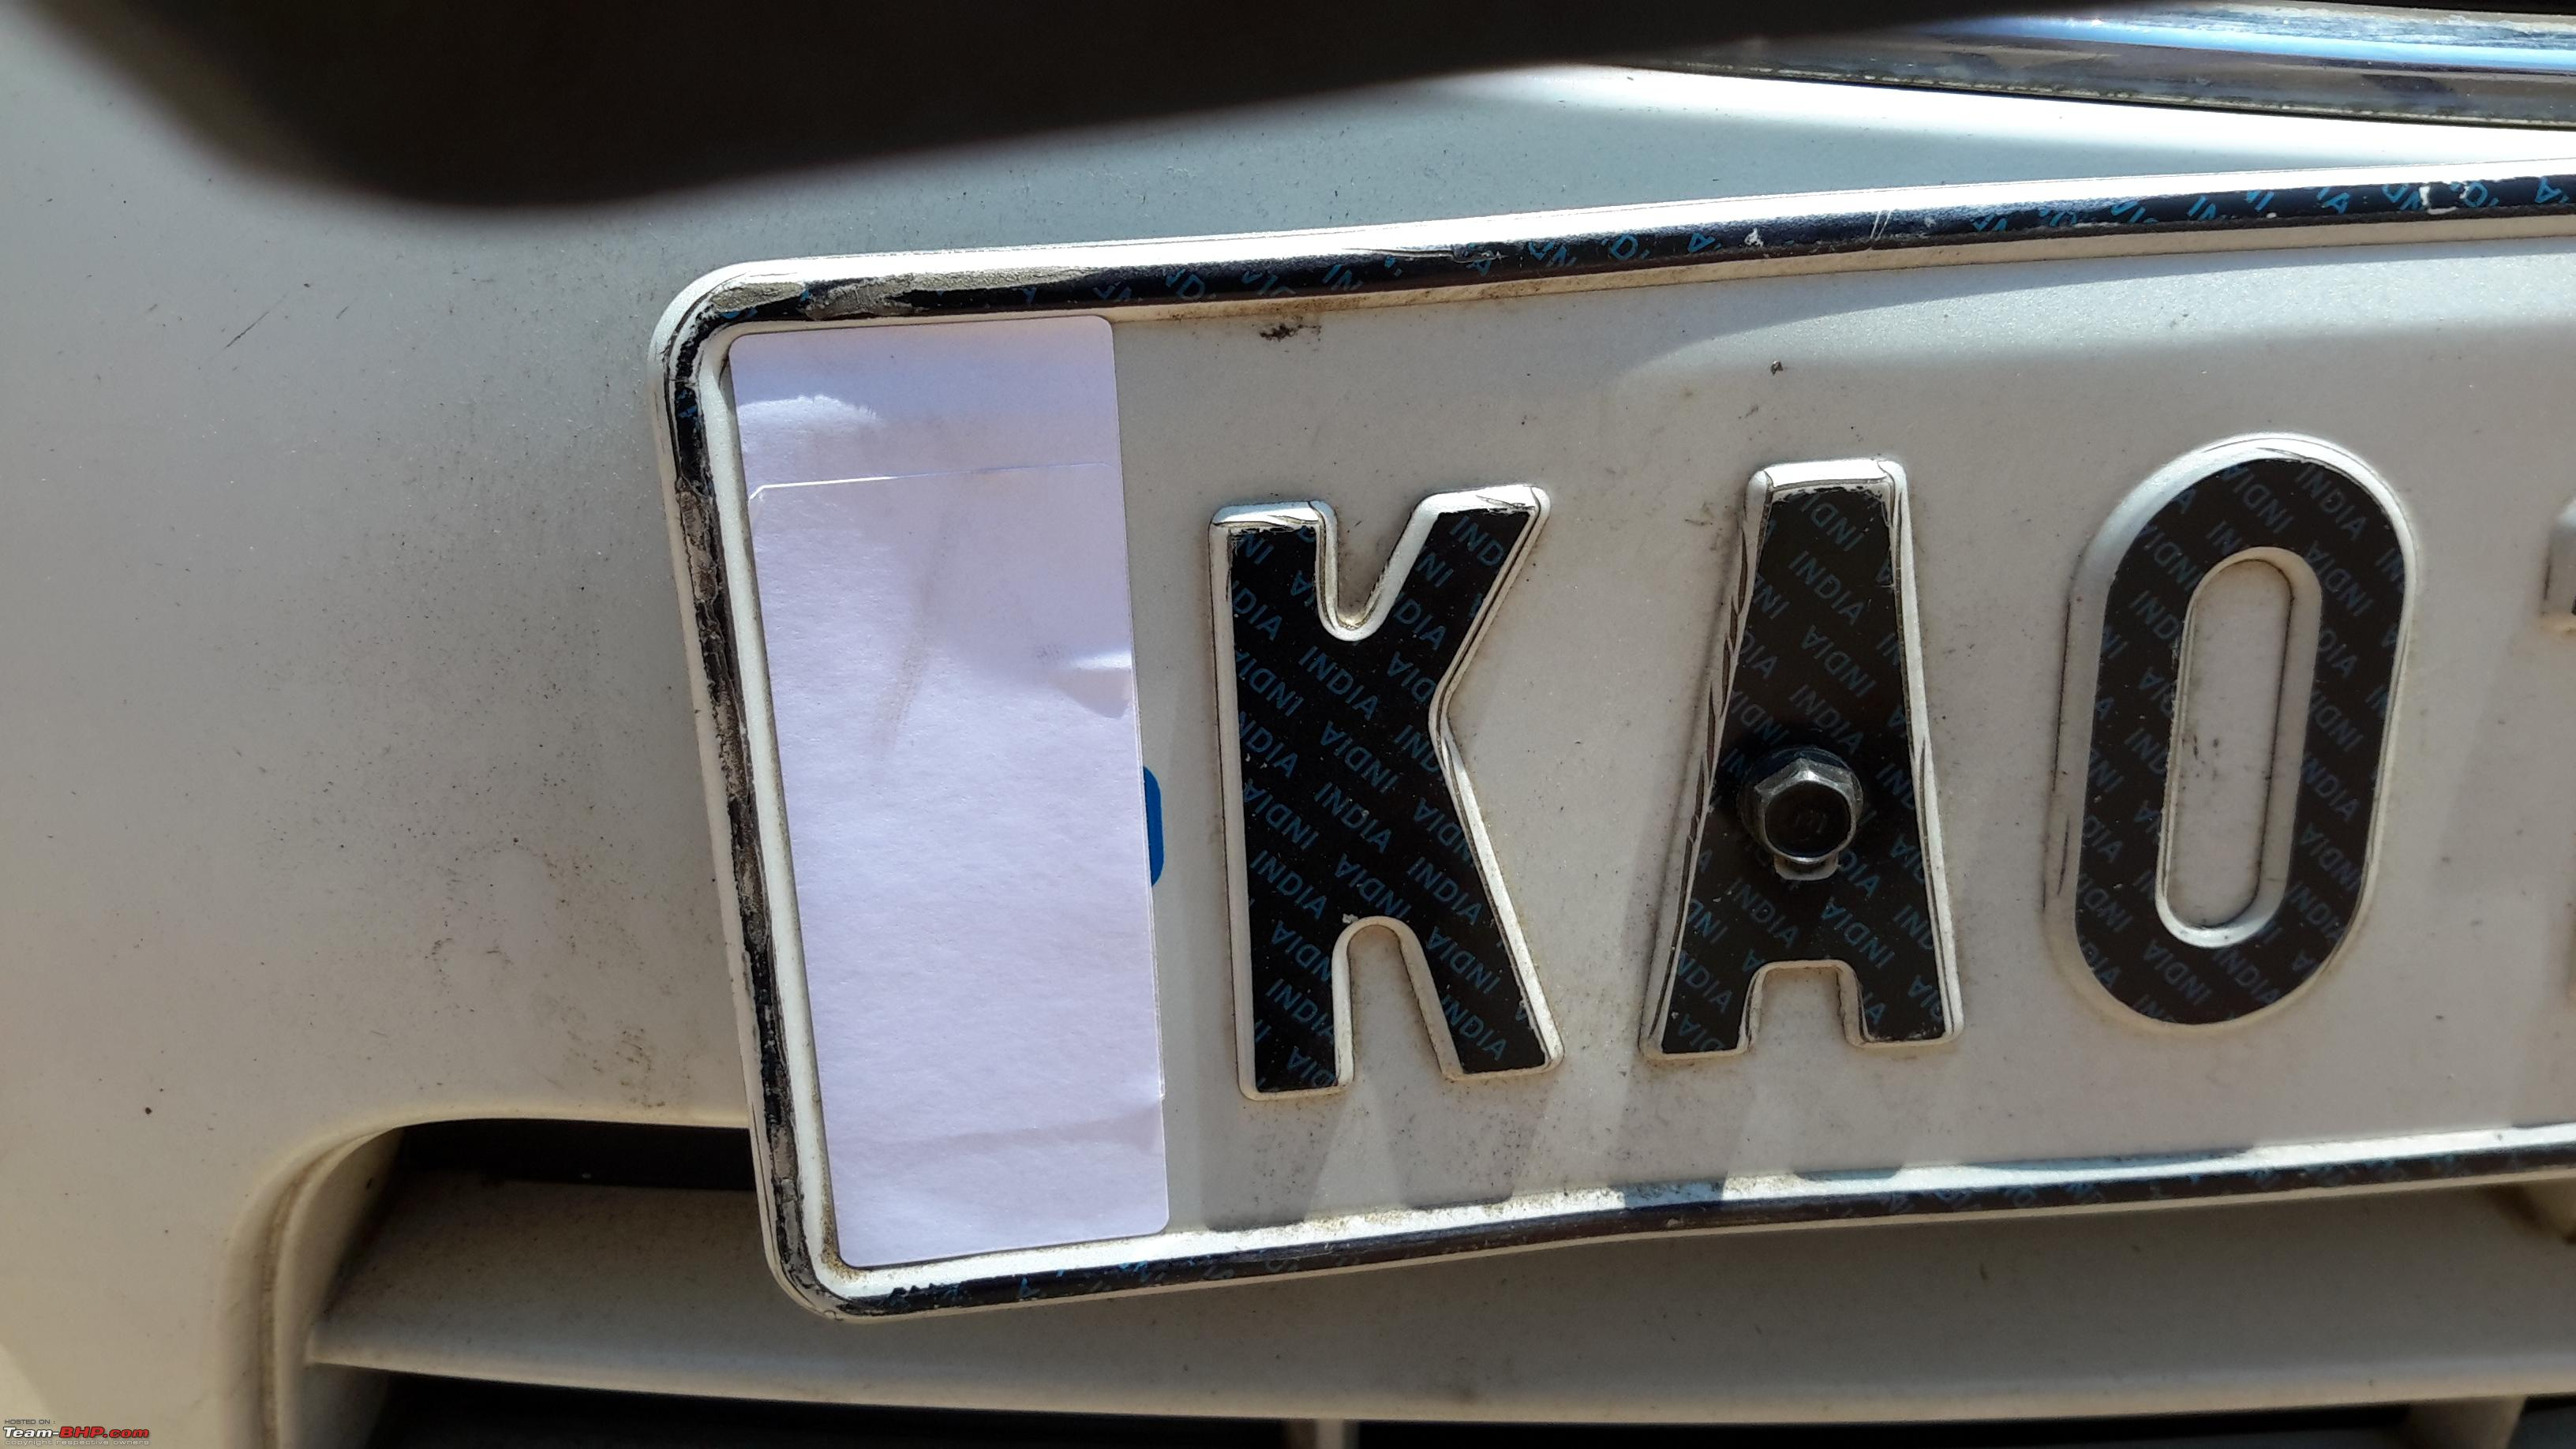 High security registration plates hsrp in india 20150322_122029 jpg